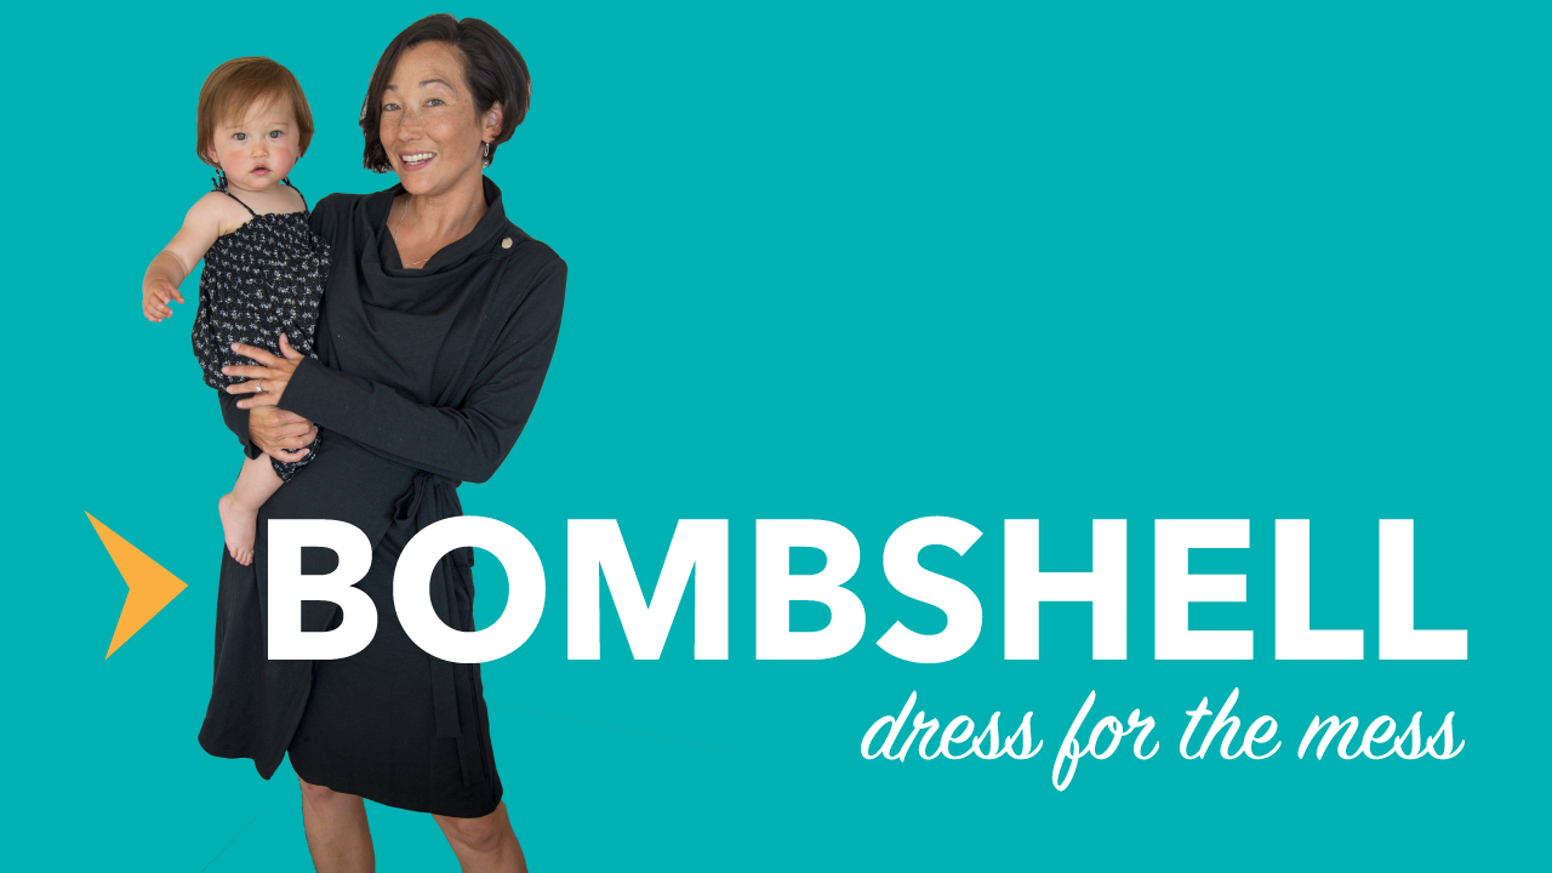 Originally conceived for new moms, the Bombshell is an easy, stylish eco-friendly cover-up for anyone wanting to dress for the mess. AVAILABLE NOW!